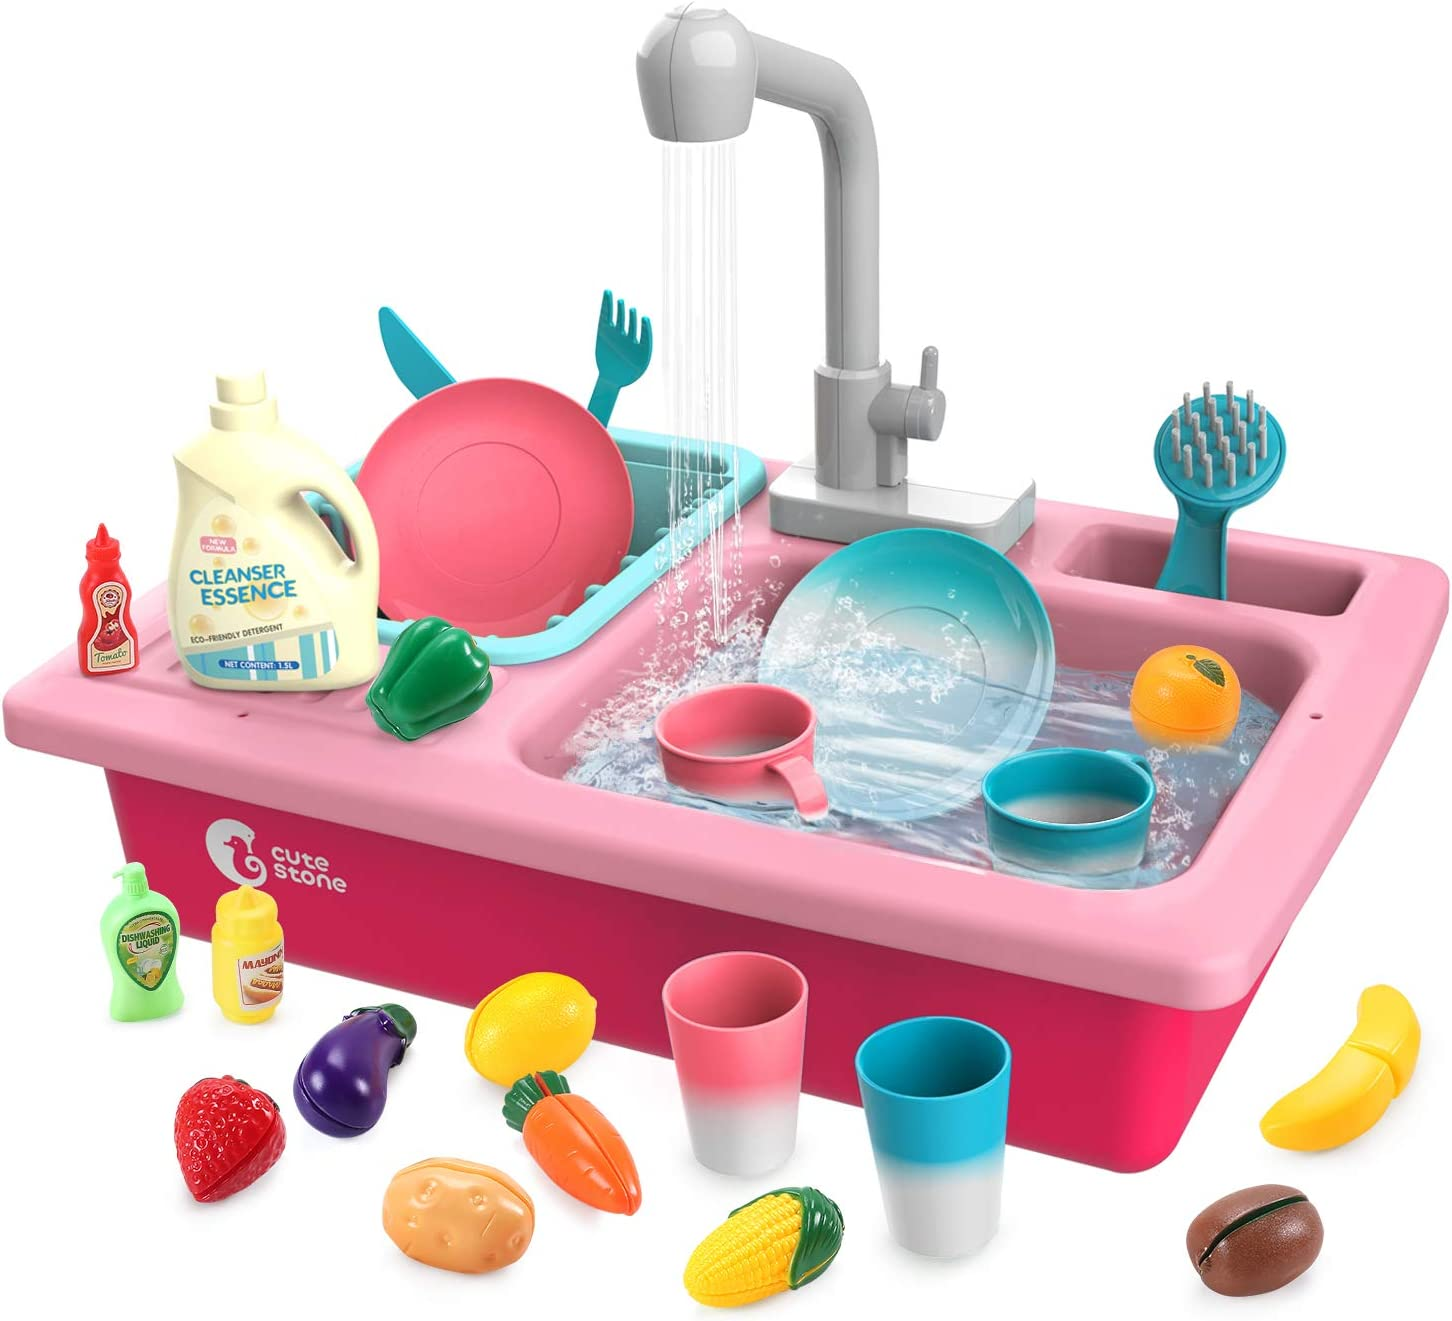 CUTE STONE Play Kitchen Sink Toys,Electric Dishwasher Playing Toy with Running Water,Upgraded Automatic Faucets and Color Changing Accessories, Role Play Sink Set Gifts for Kids Boys Girls Toddlers